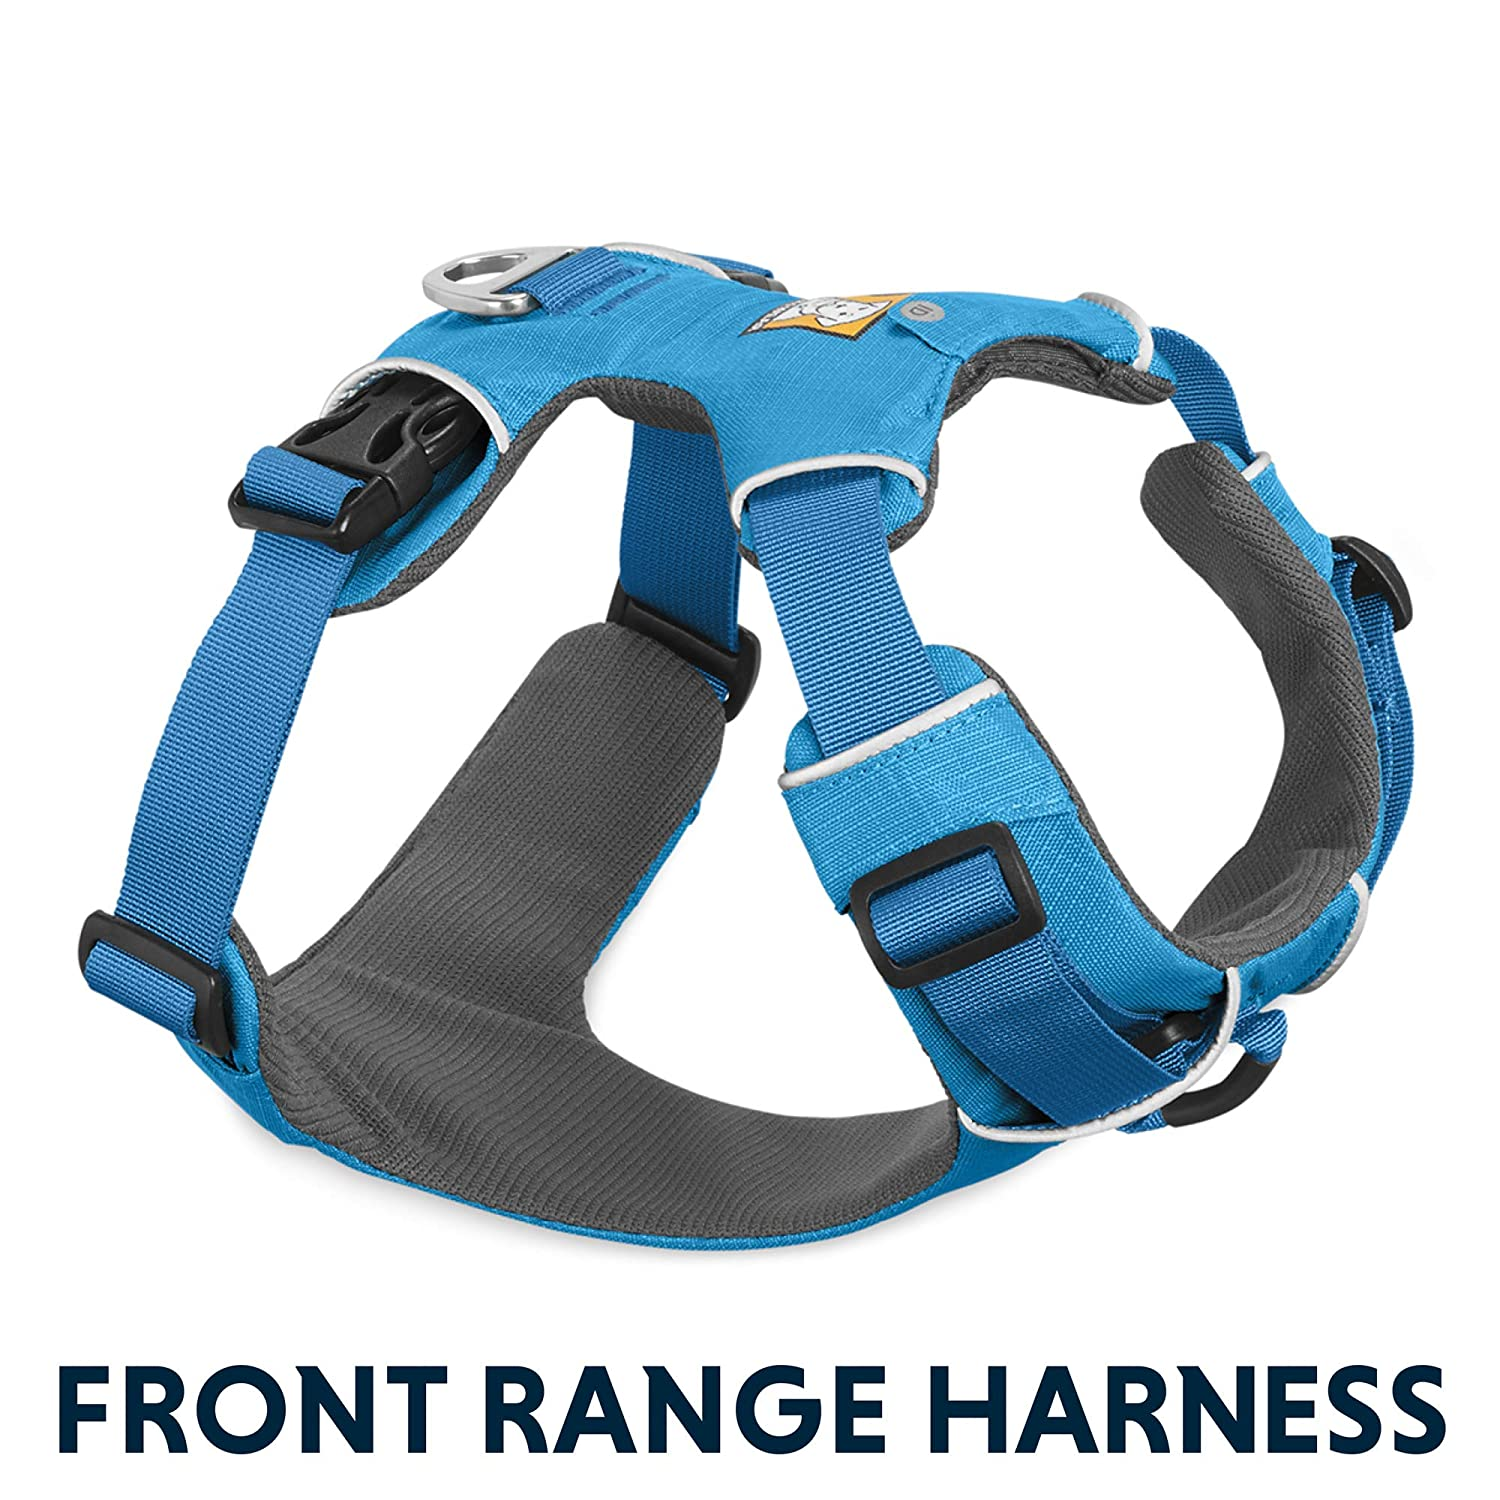 bluee XX-Small bluee XX-Small Ruffwear Front Range Harness, XX-Small, Pacific bluee